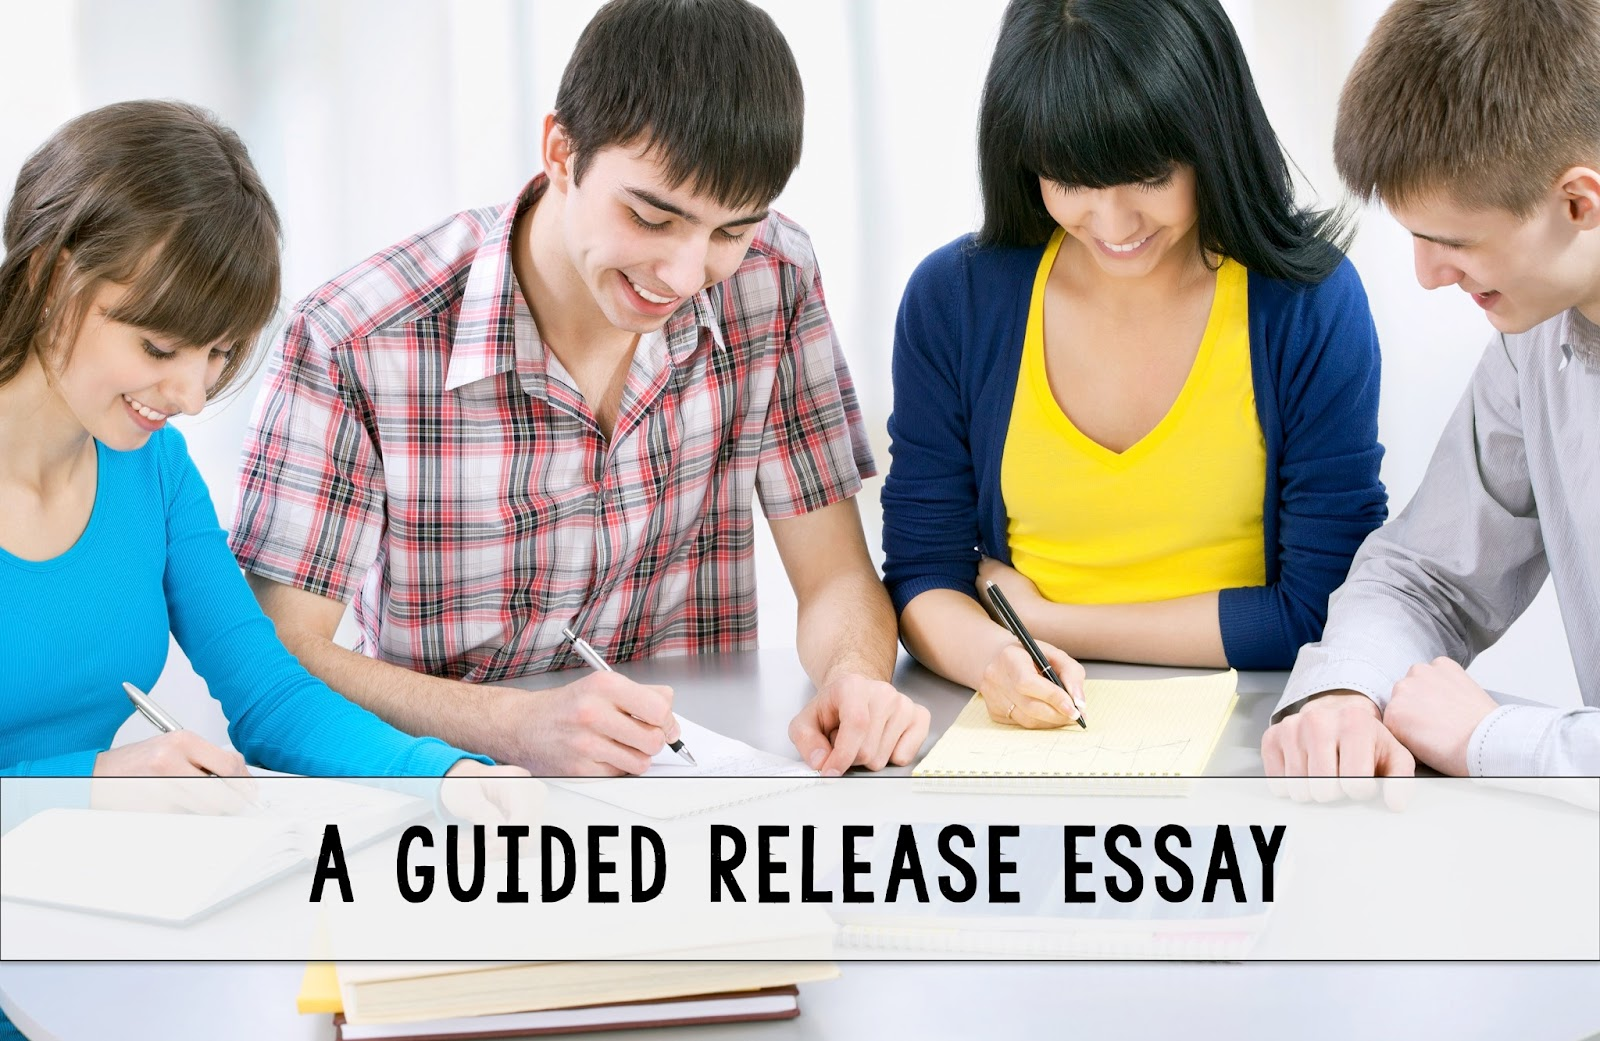 student and group essay